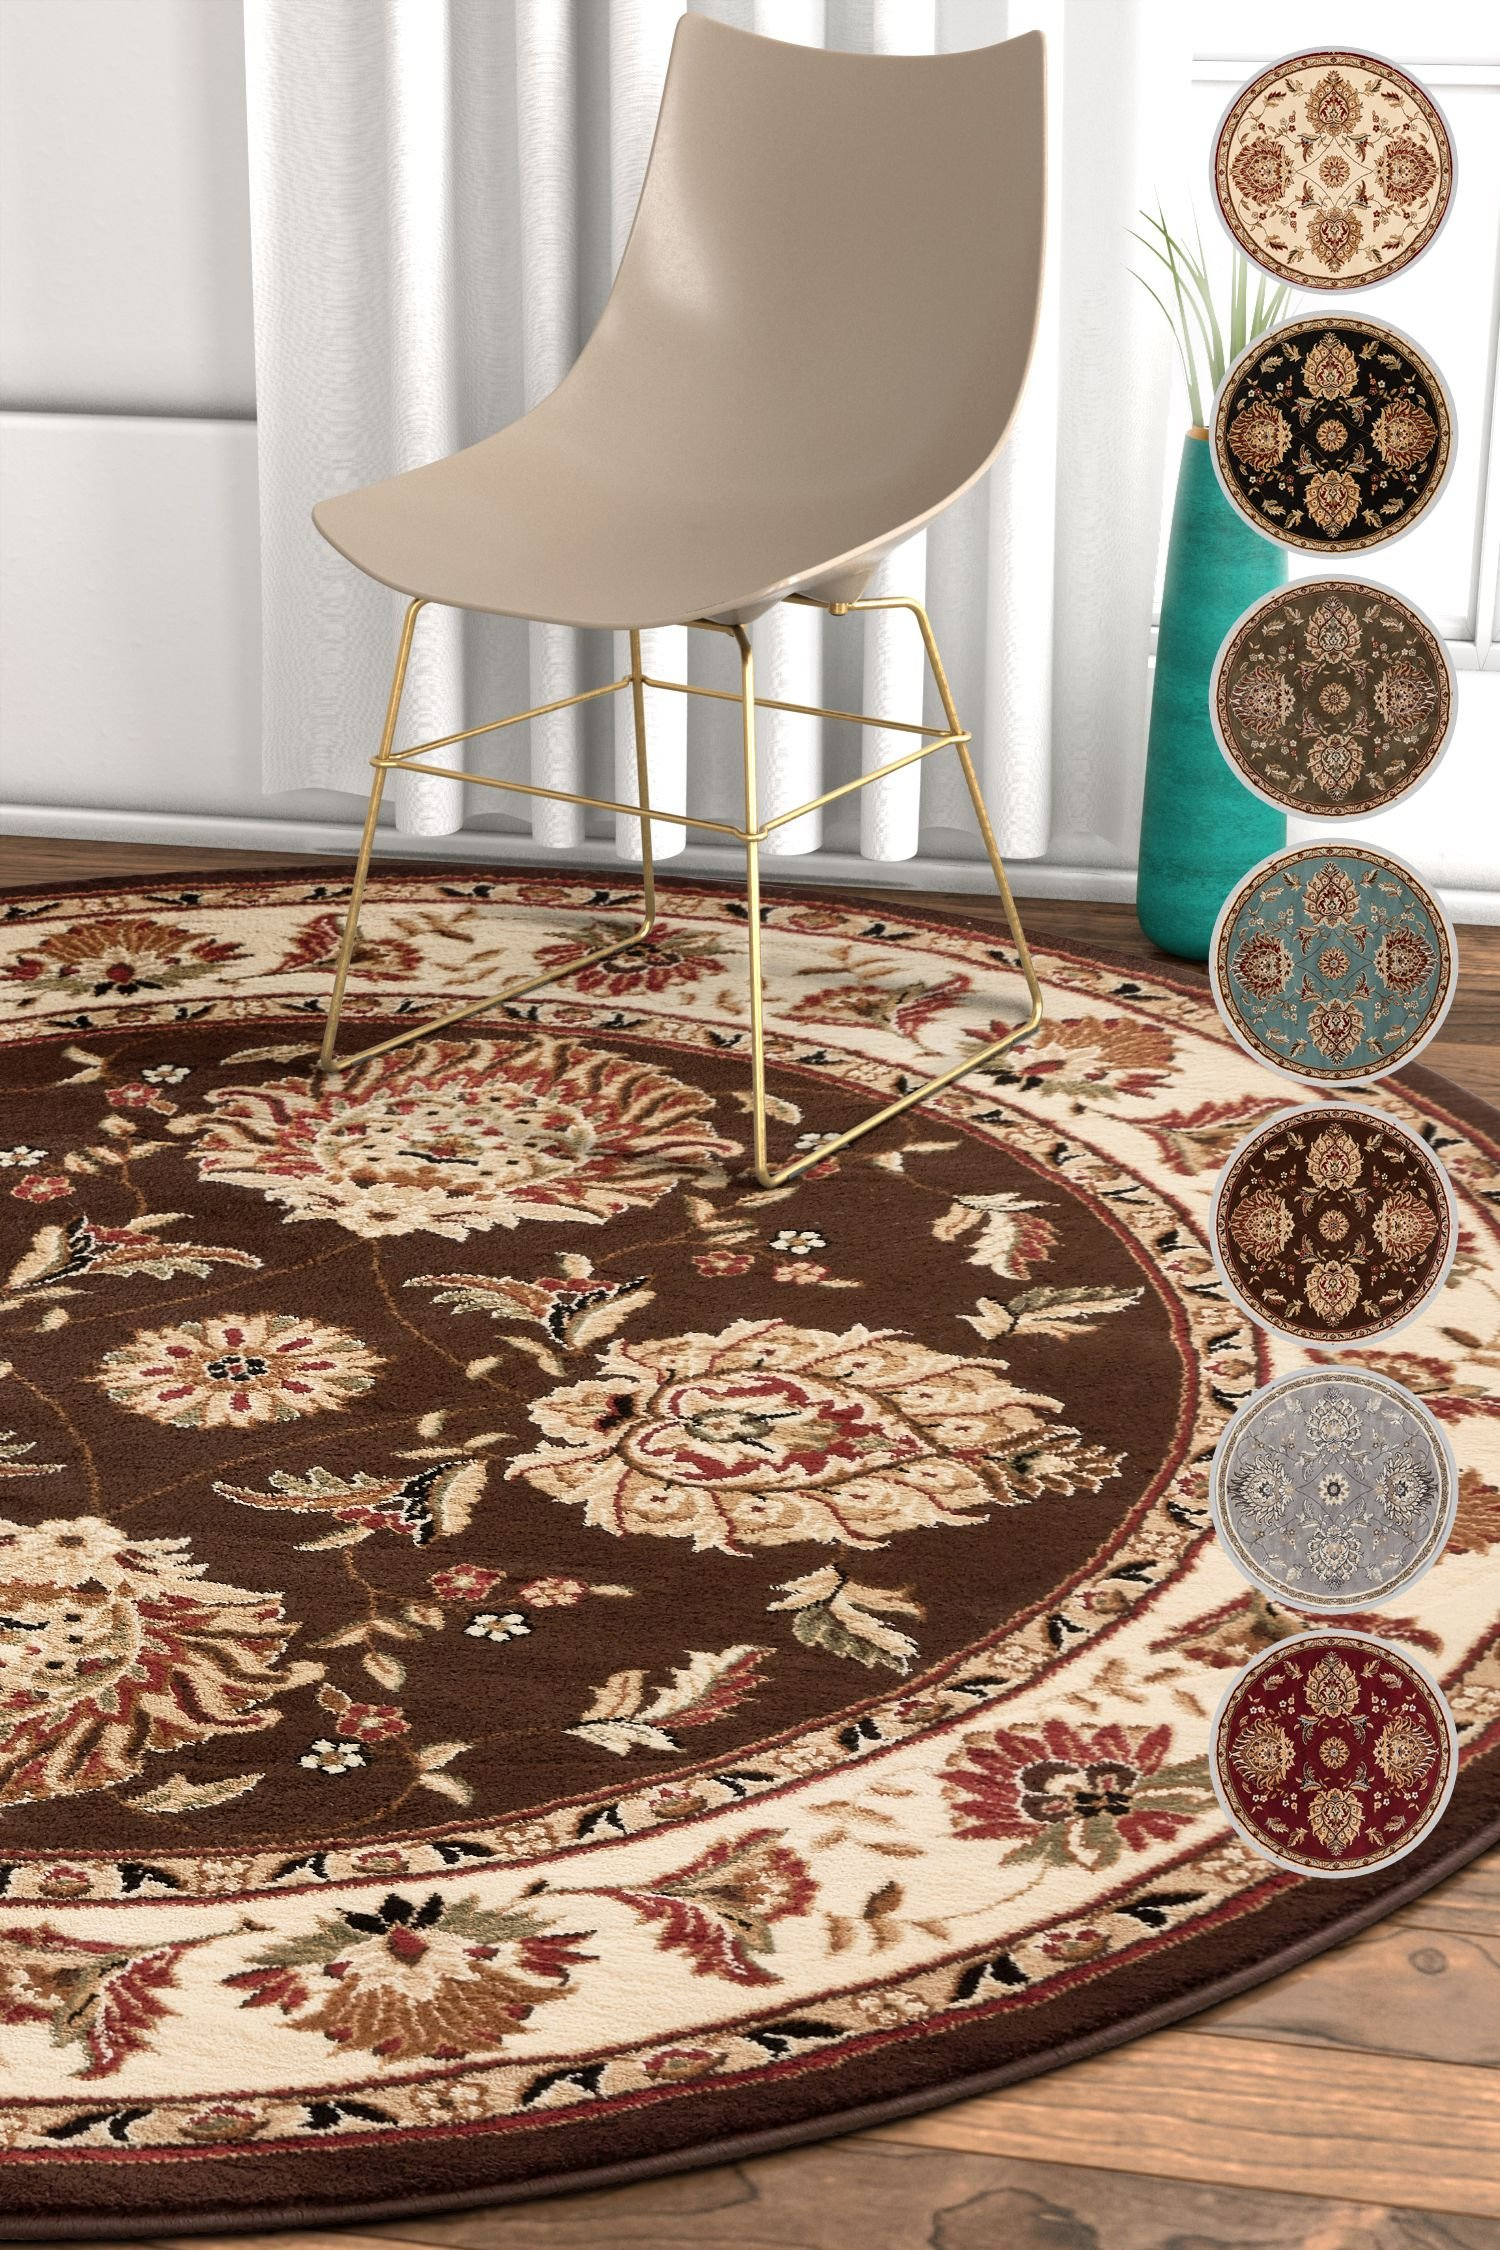 Well Woven Sultan Sarouk Brown Oriental 5 Round (5'3'' Round) Area Rug Persian Floral Formal Traditional Area Rug Easy Clean Stain Fade Resistant Shed Free Modern Classic Thick Soft Plush Rug